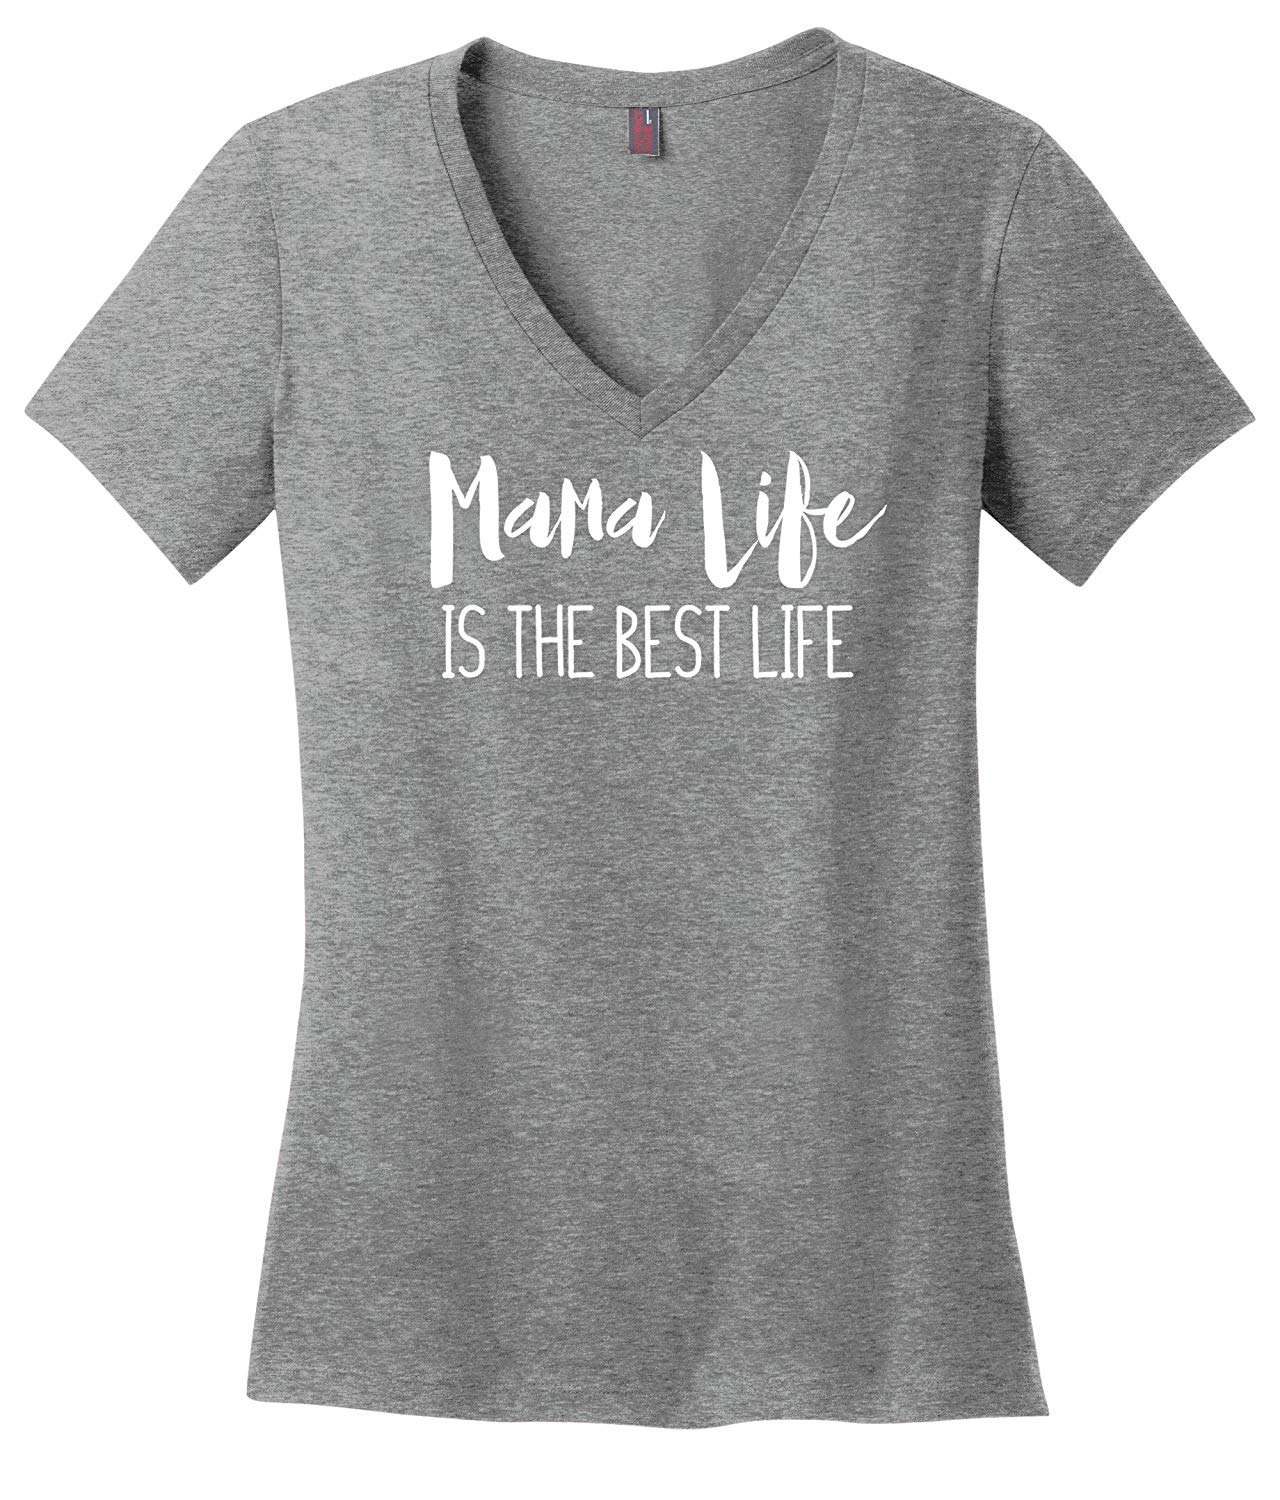 Simply Sage Market Mama Life is The Best Life- Short Sleeve Soft Comfortable Women's Graphic Tee